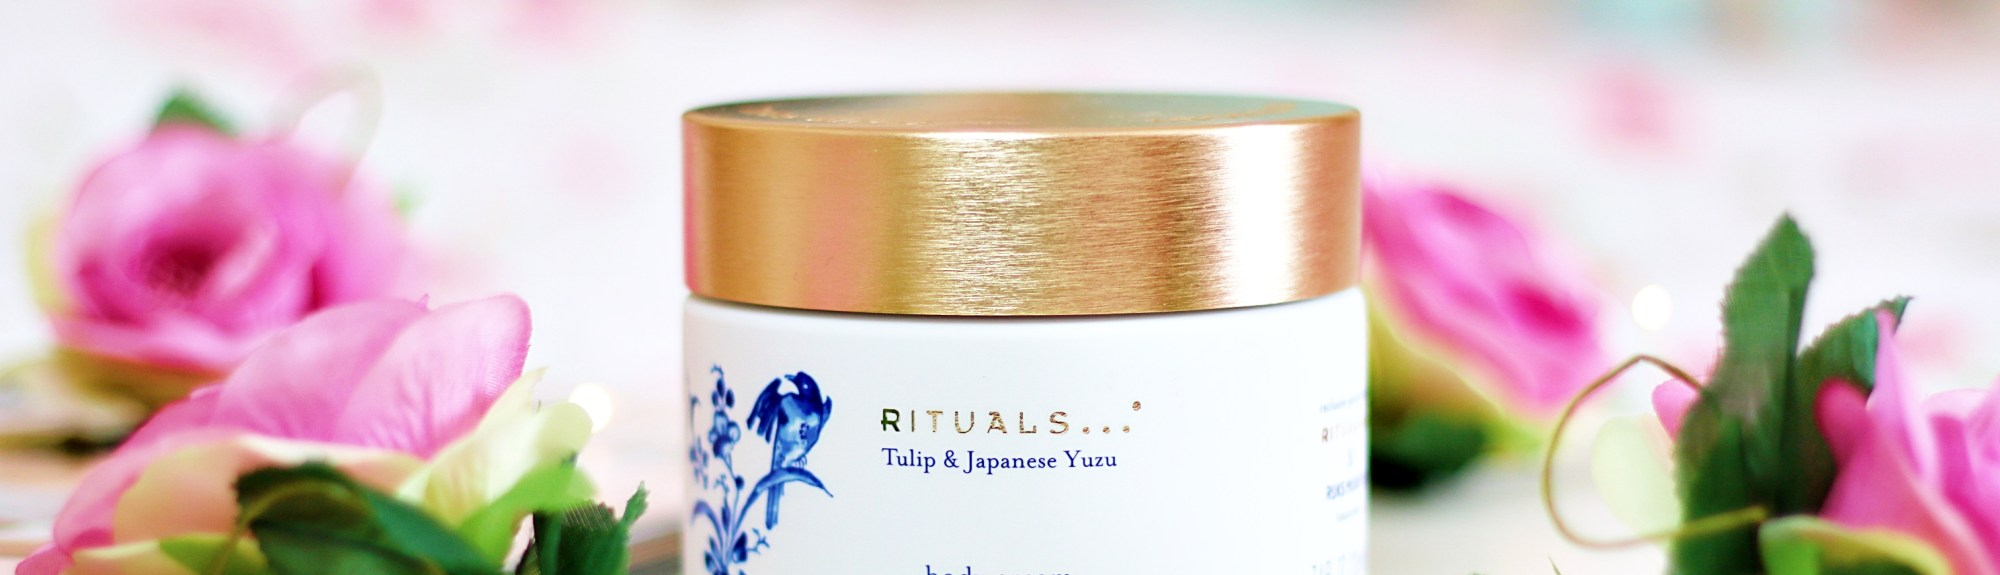 Rituals Amsterdam Collection Body Cream